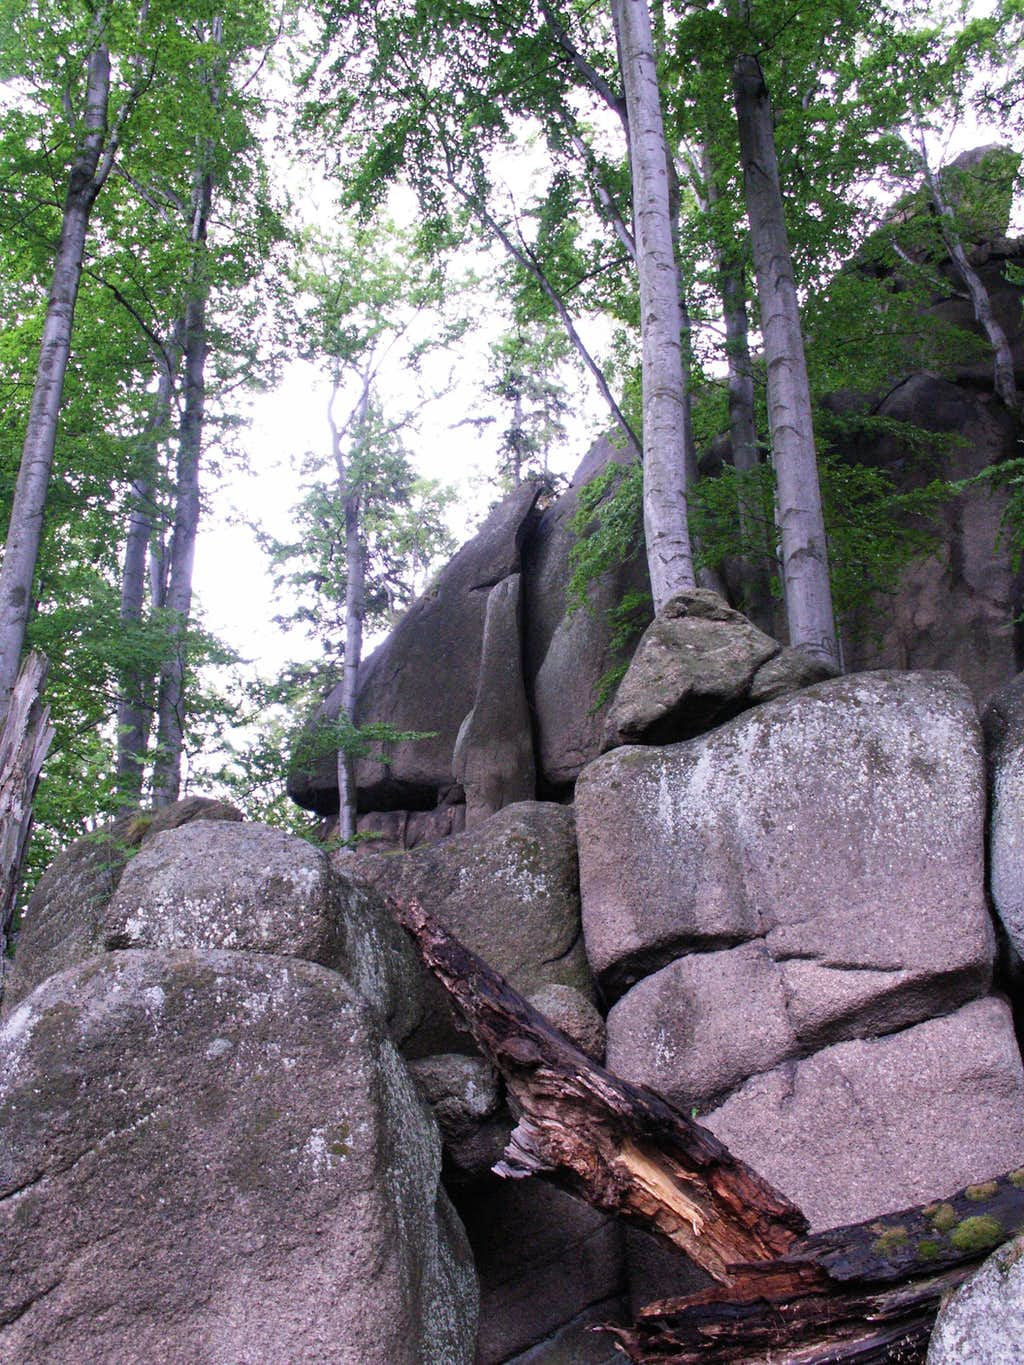 These boulders...